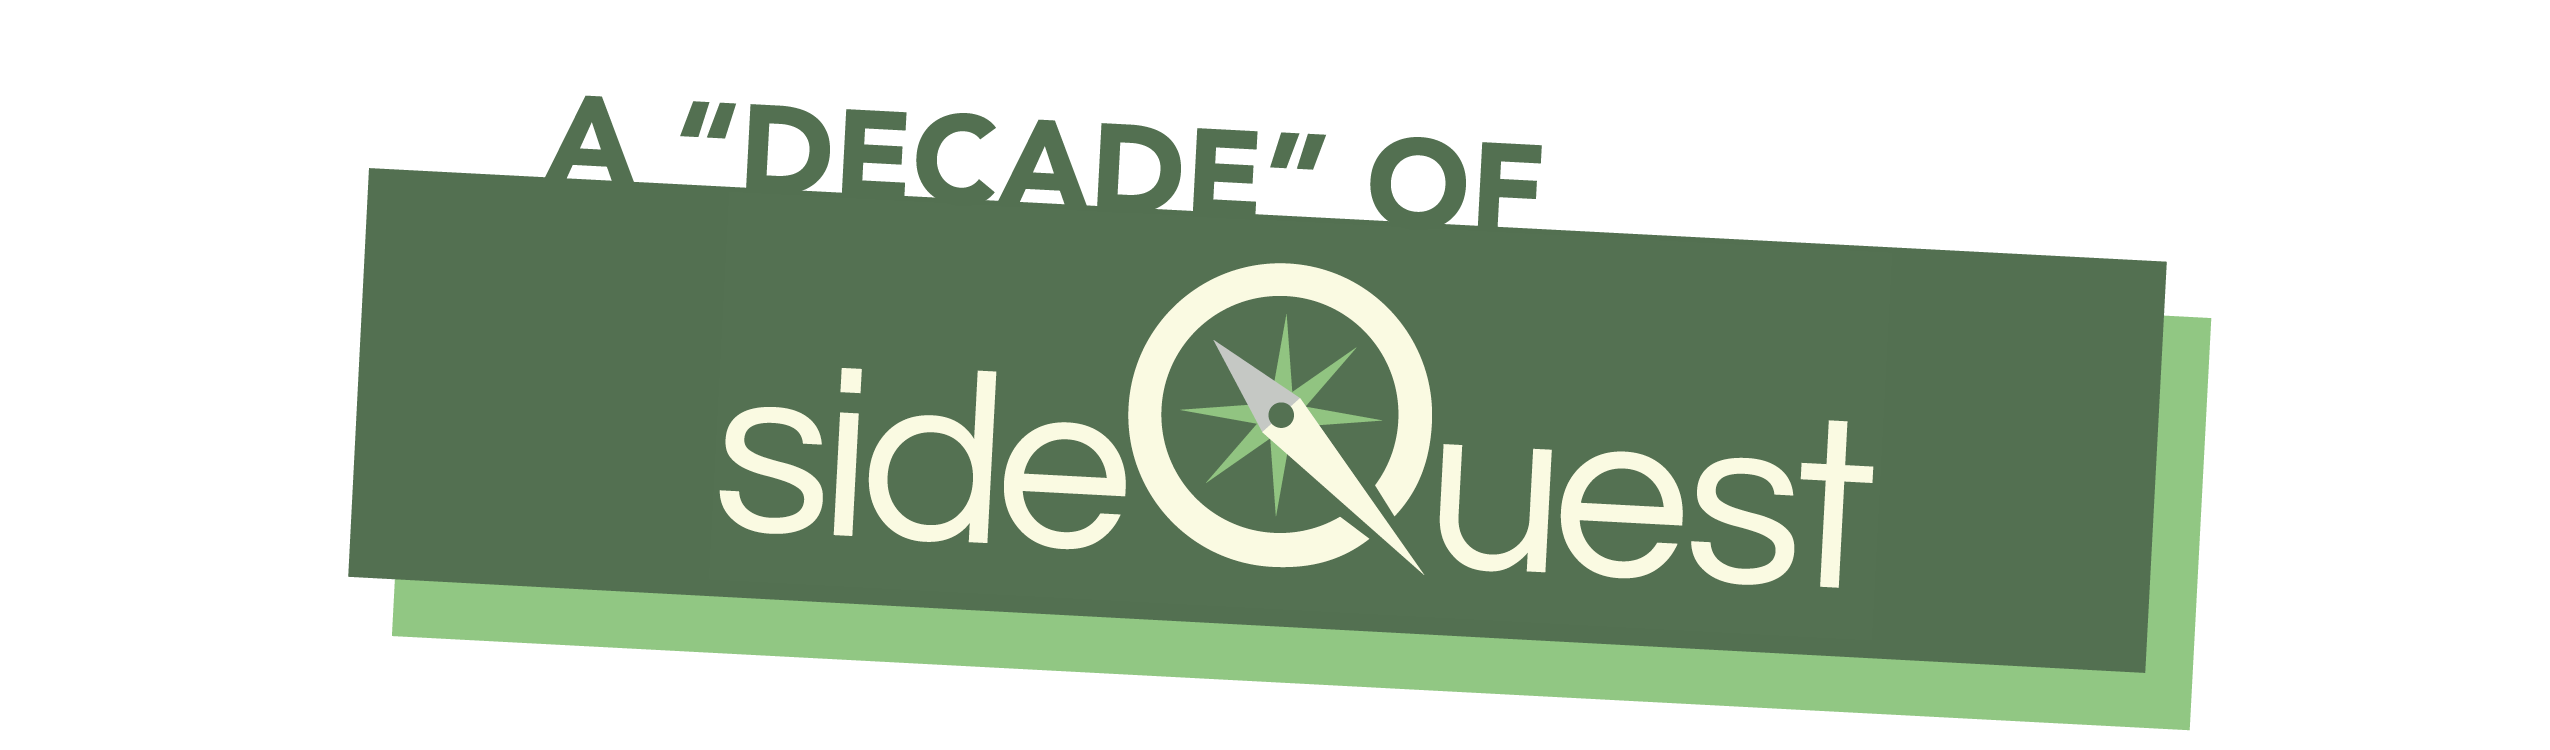 "A ""Decade"" of Sidequest"